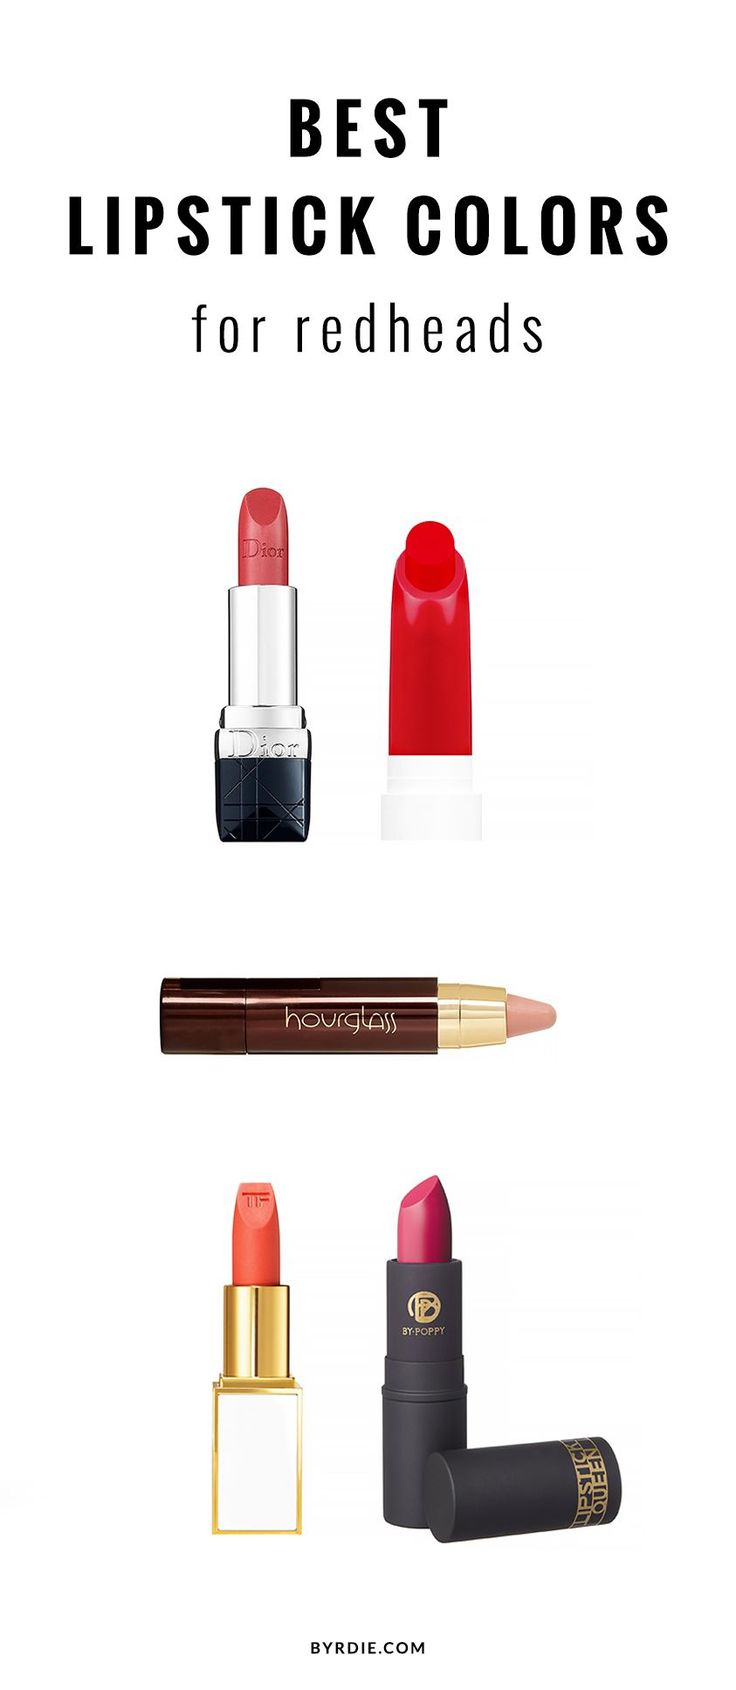 91 best images about Makeup for Redheads on Pinterest | Brows ...